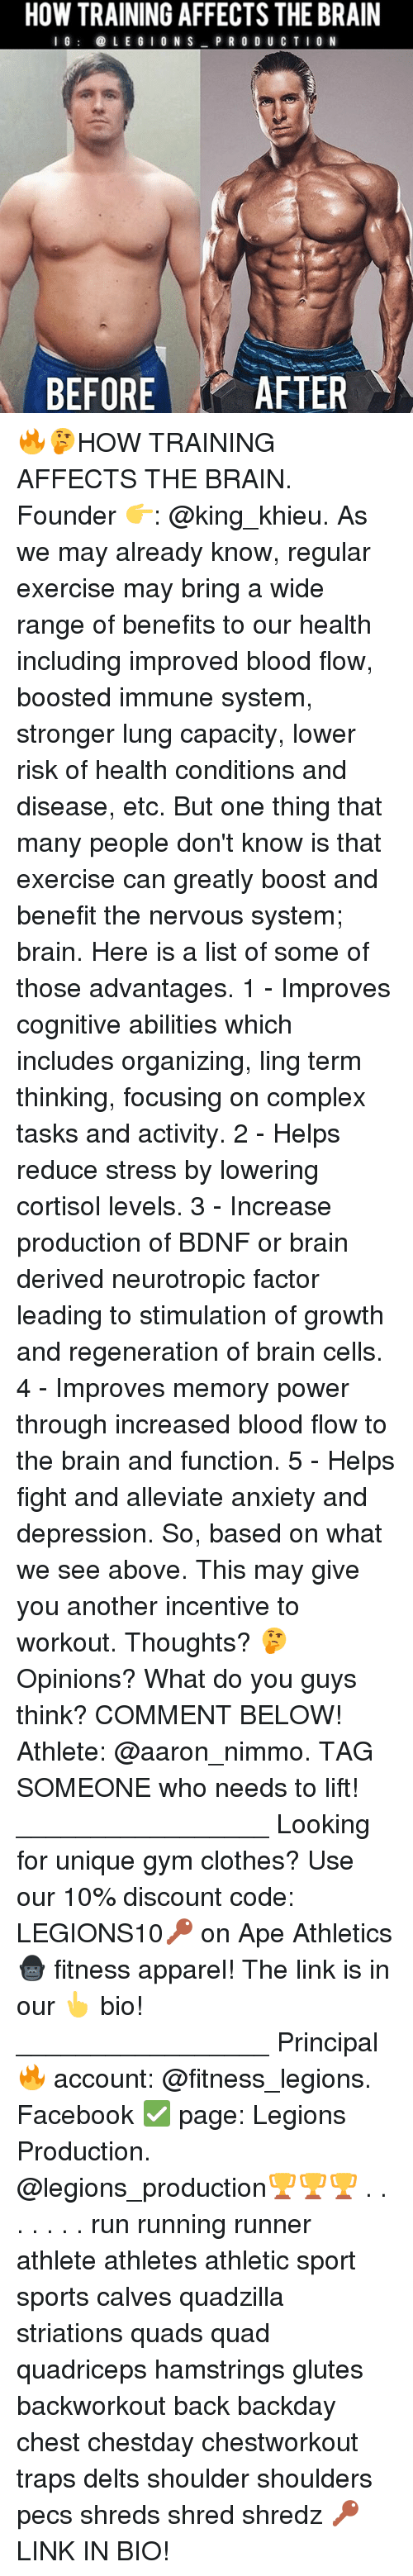 lunging: HOW TRAINING AFFECTS THE BRAIN  I G  LEGION S  PRODUCTION  BEFORE  AFTER 🔥🤔HOW TRAINING AFFECTS THE BRAIN. Founder 👉: @king_khieu. As we may already know, regular exercise may bring a wide range of benefits to our health including improved blood flow, boosted immune system, stronger lung capacity, lower risk of health conditions and disease, etc. But one thing that many people don't know is that exercise can greatly boost and benefit the nervous system; brain. Here is a list of some of those advantages. 1 - Improves cognitive abilities which includes organizing, ling term thinking, focusing on complex tasks and activity. 2 - Helps reduce stress by lowering cortisol levels. 3 - Increase production of BDNF or brain derived neurotropic factor leading to stimulation of growth and regeneration of brain cells. 4 - Improves memory power through increased blood flow to the brain and function. 5 - Helps fight and alleviate anxiety and depression. So, based on what we see above. This may give you another incentive to workout. Thoughts? 🤔Opinions? What do you guys think? COMMENT BELOW! Athlete: @aaron_nimmo. TAG SOMEONE who needs to lift! _________________ Looking for unique gym clothes? Use our 10% discount code: LEGIONS10🔑 on Ape Athletics 🦍 fitness apparel! The link is in our 👆 bio! _________________ Principal 🔥 account: @fitness_legions. Facebook ✅ page: Legions Production. @legions_production🏆🏆🏆 . . . . . . . run running runner athlete athletes athletic sport sports calves quadzilla striations quads quad quadriceps hamstrings glutes backworkout back backday chest chestday chestworkout traps delts shoulder shoulders pecs shreds shred shredz 🔑LINK IN BIO!